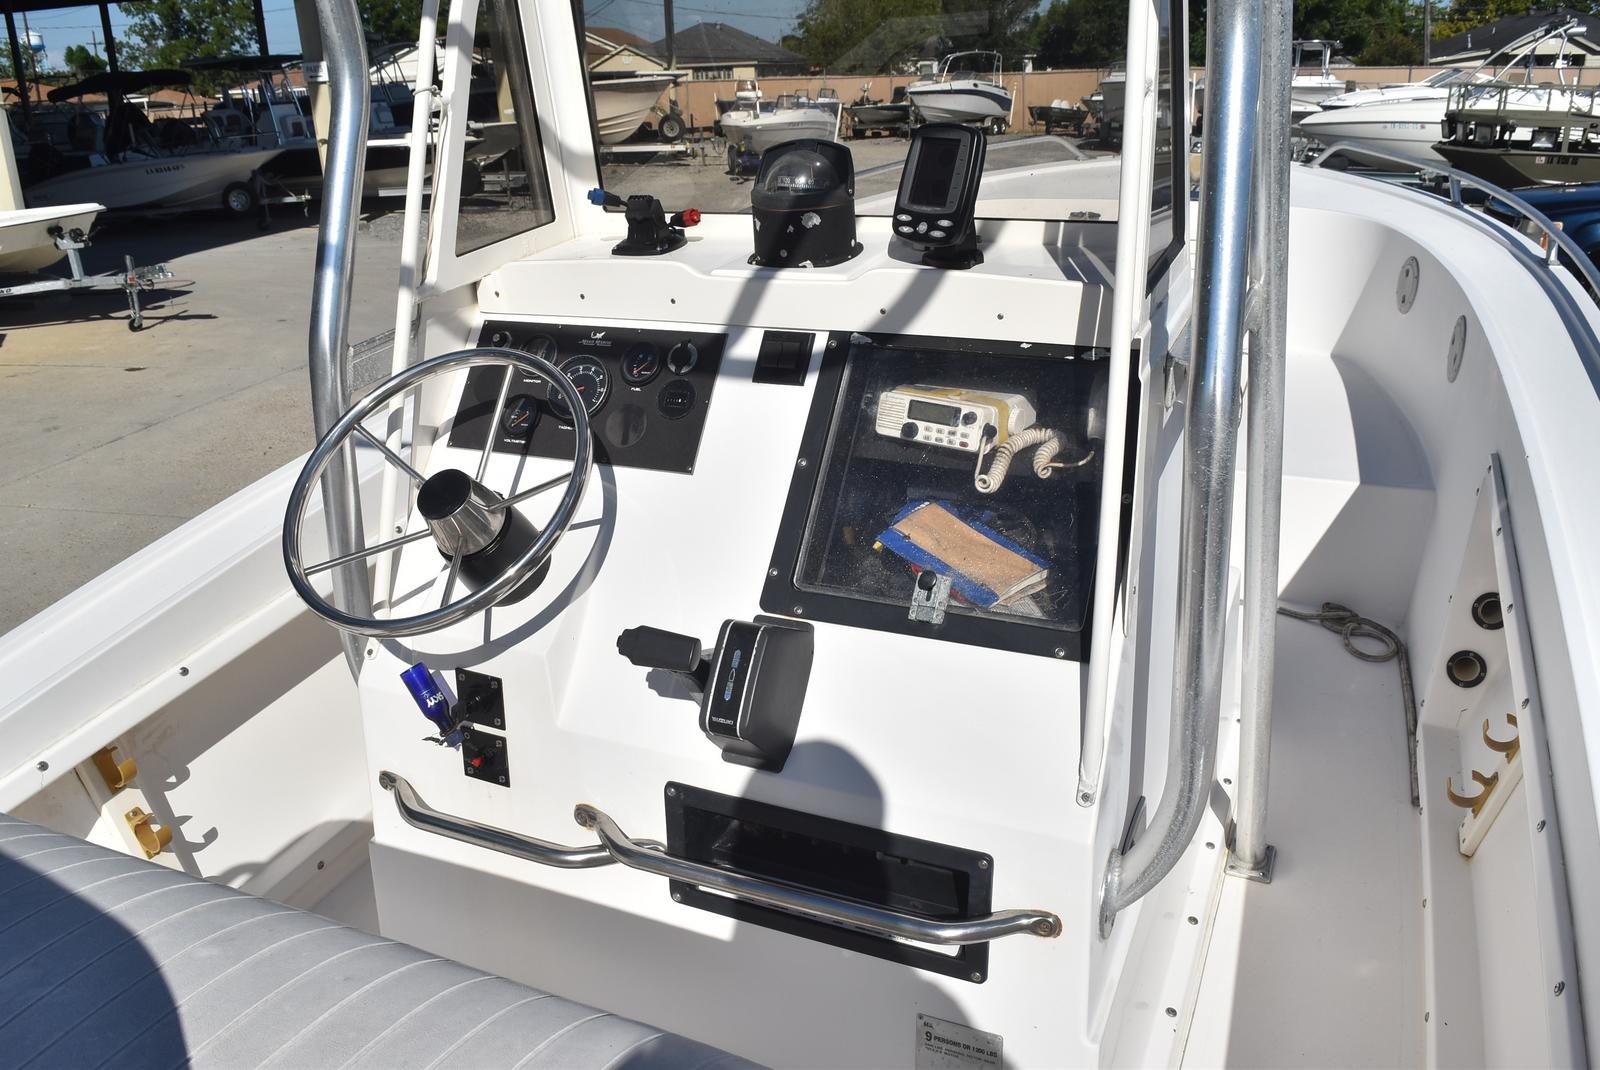 1996 Mako boat for sale, model of the boat is 22 Mako & Image # 256 of 390